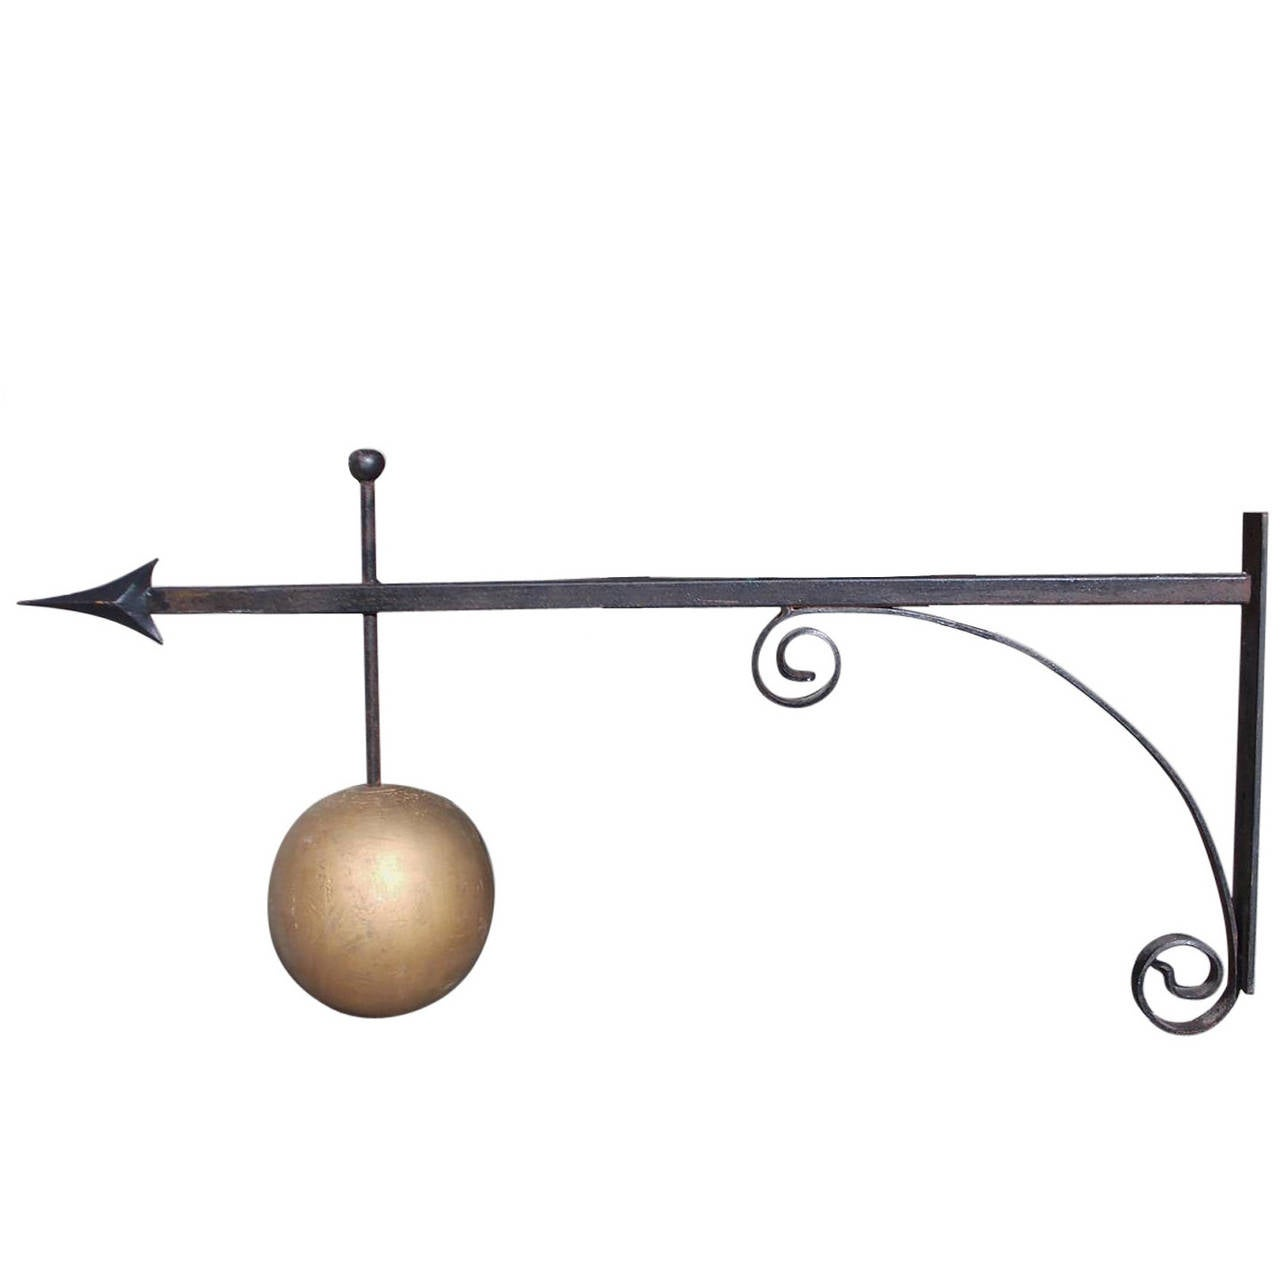 American Wrought Iron and Gilt Trade Sign Bracket , Circa 1880